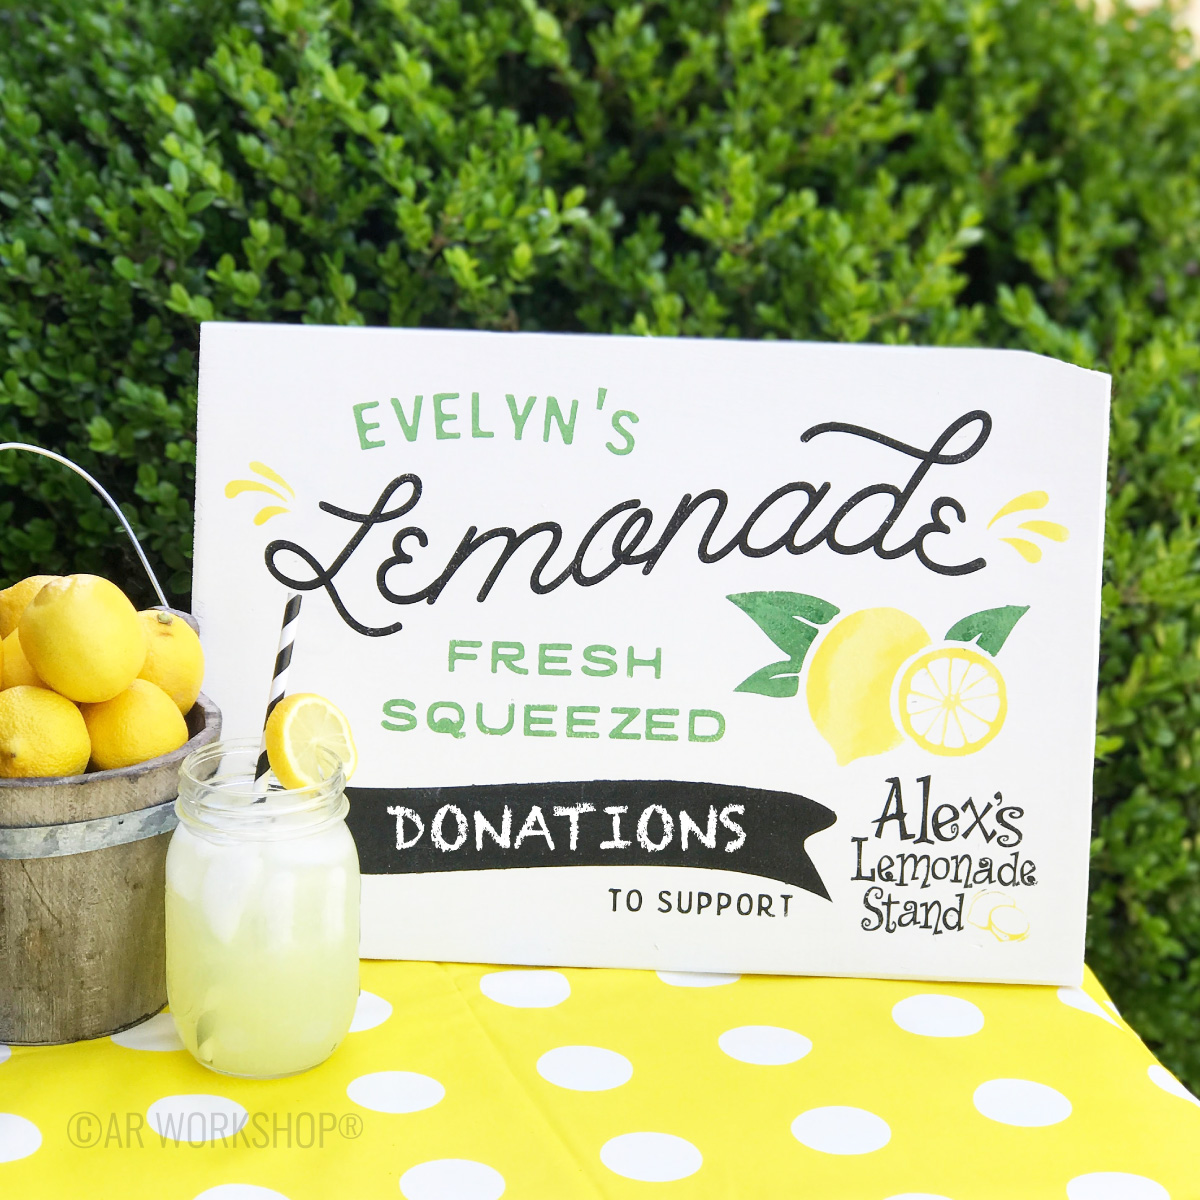 AR Workshop® - Alex's Lemonade Stand Custom DIY Sign or Kit